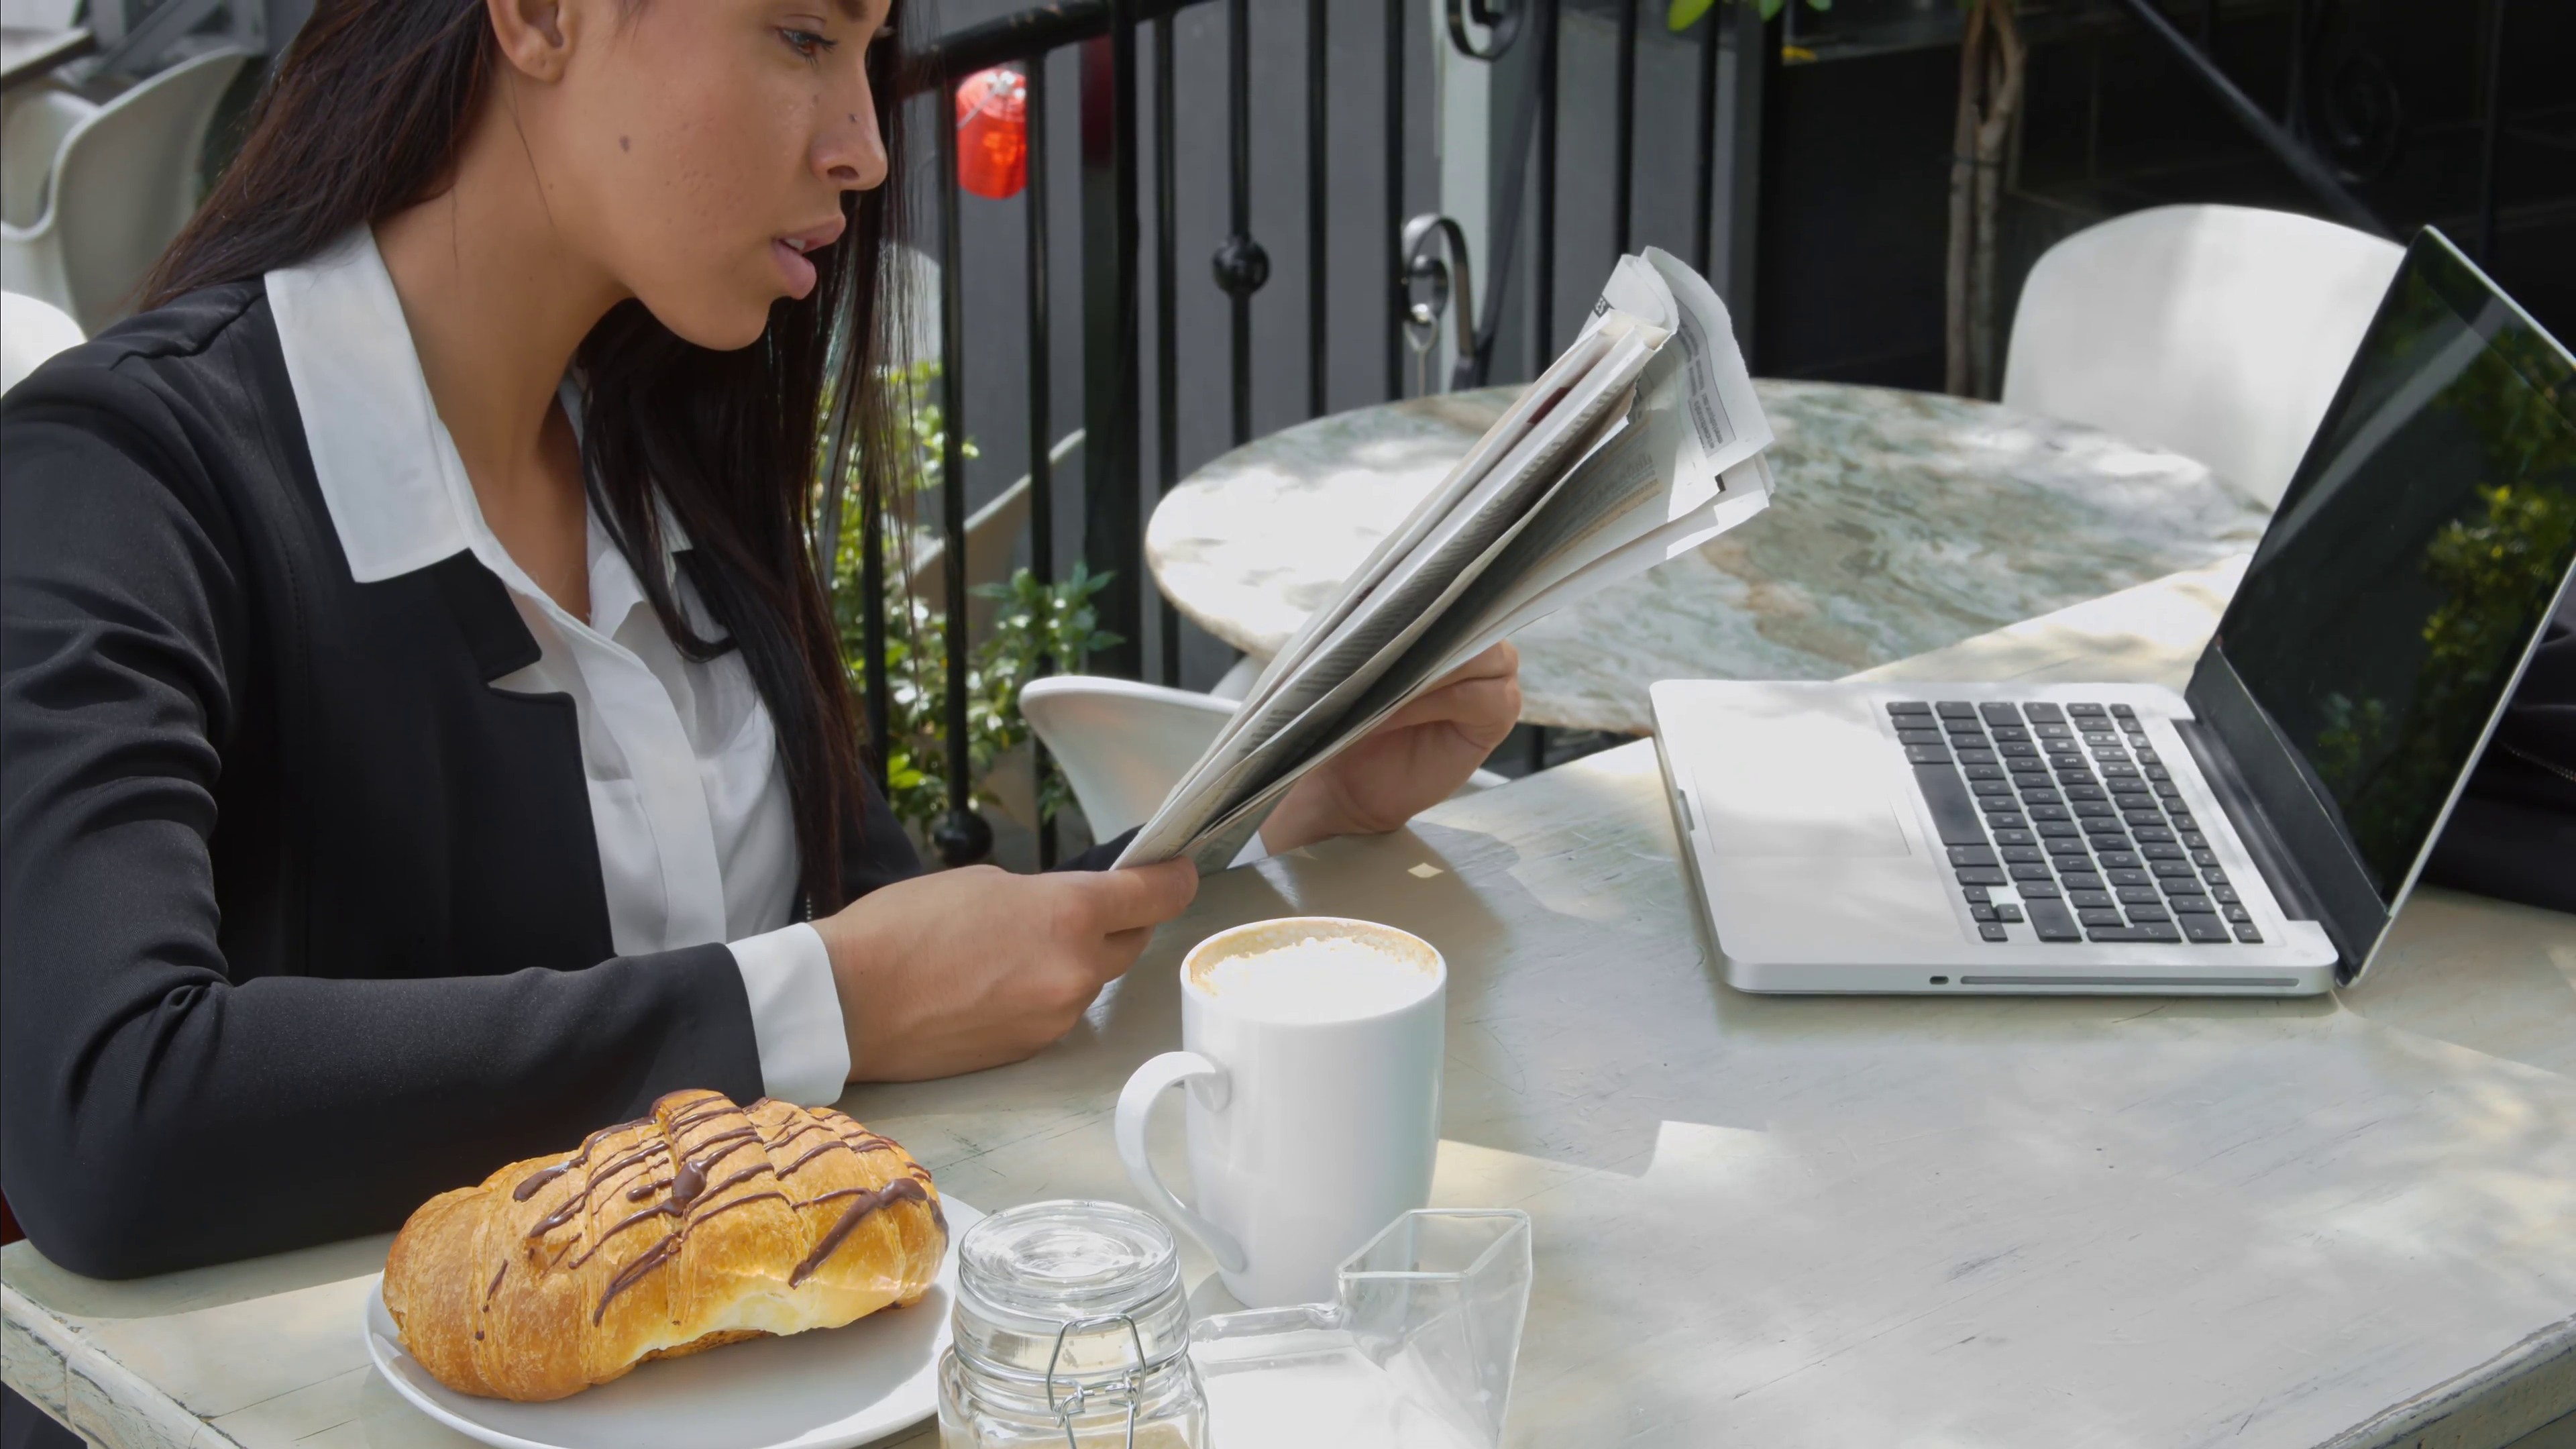 young-attractive-businesswoman-salesperson-working-on-modern-laptop-with-morning-coffee-and-newspaper-in-cafe_41vvzbq__F0000